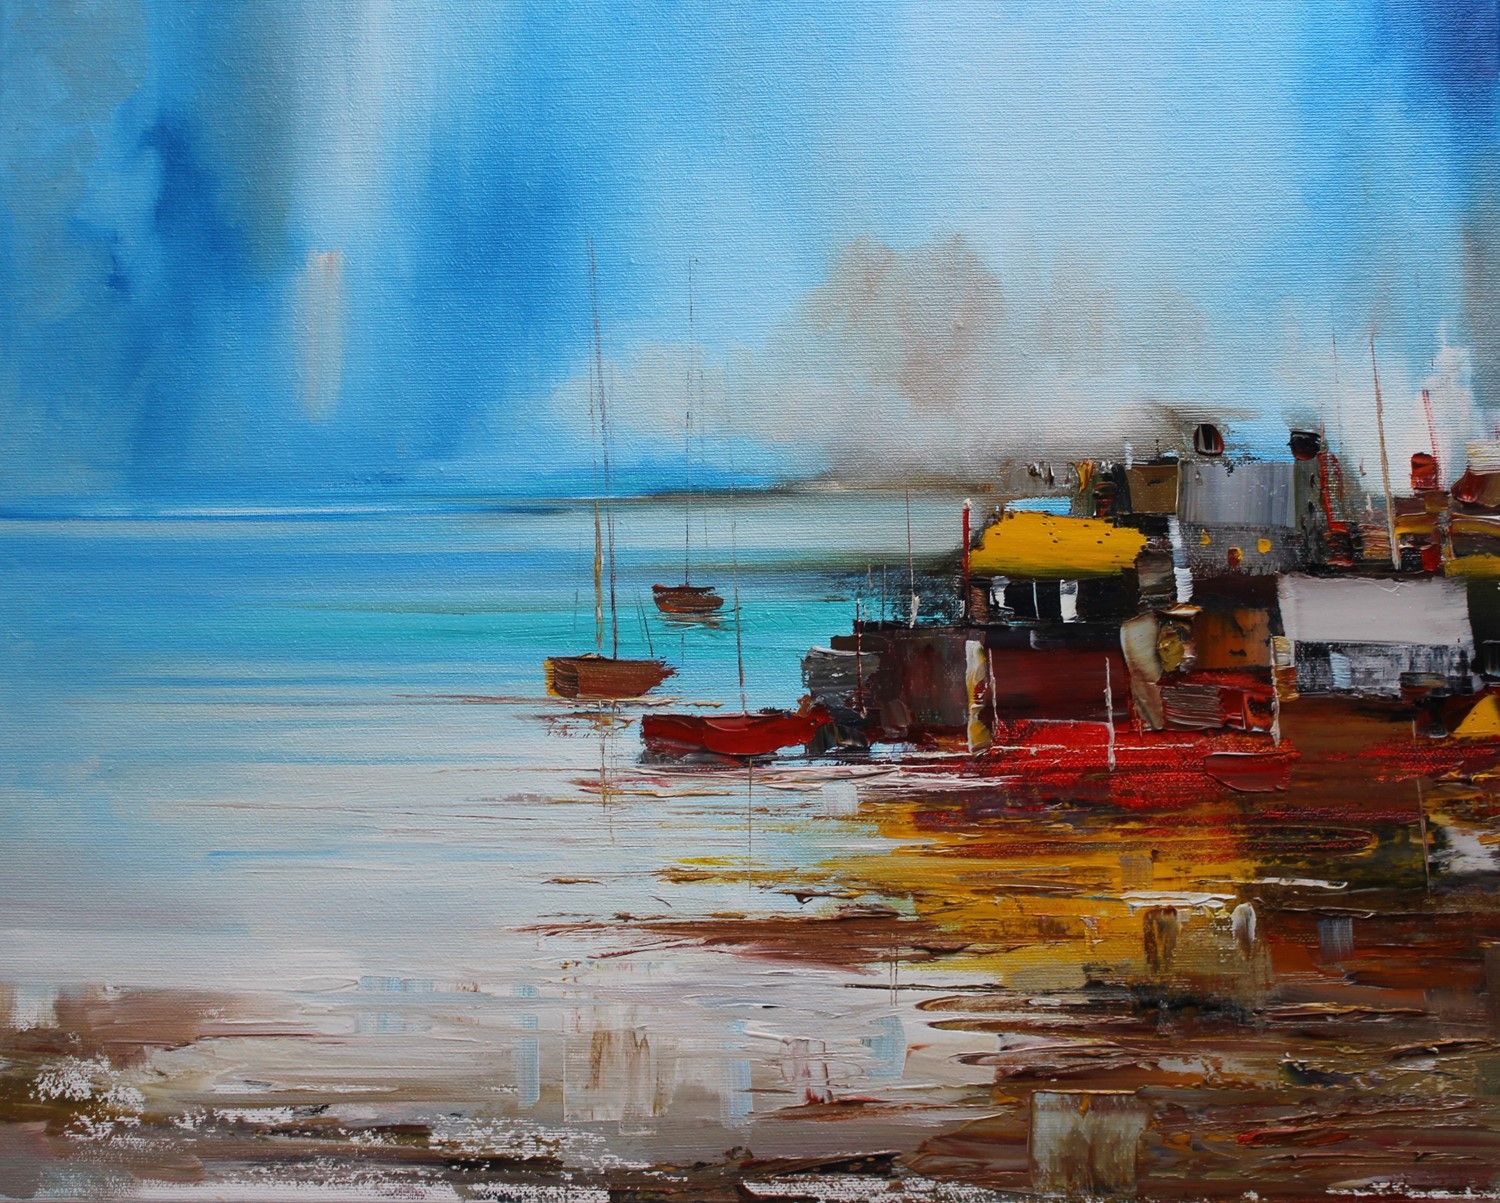 'Harbour Houses' by artist Rosanne Barr